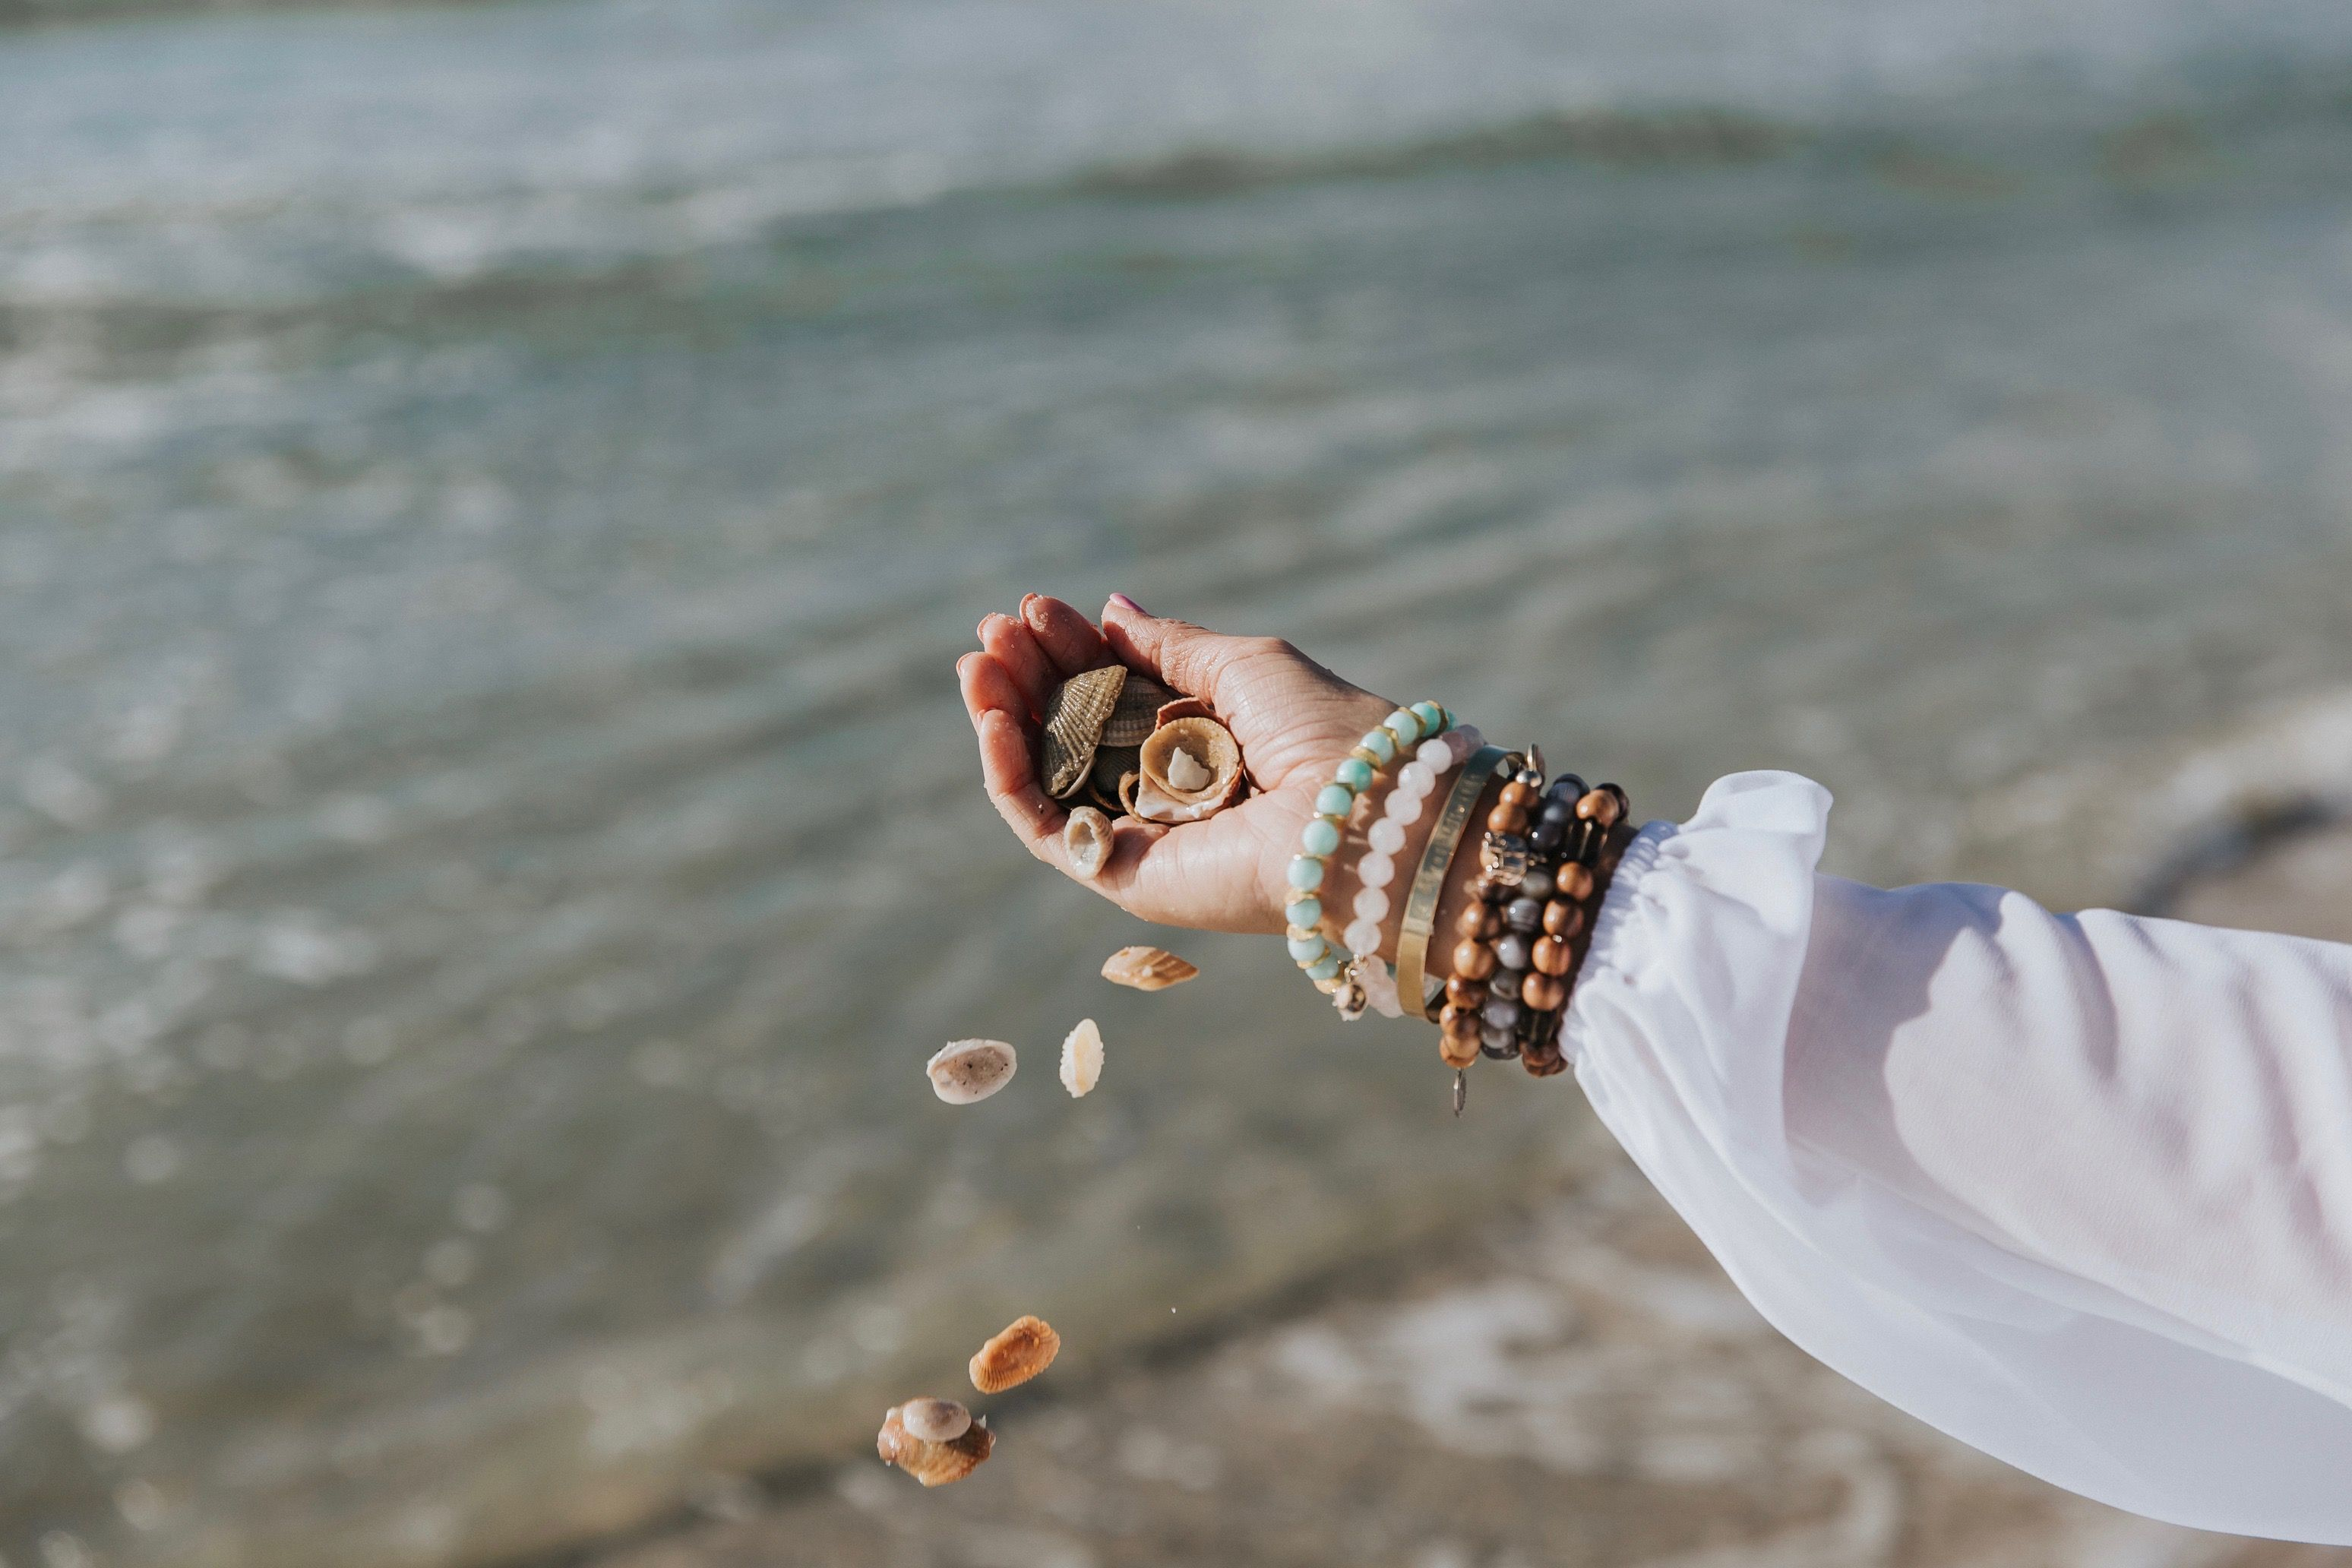 sea shells at the beach. just another artsy photo #beach #sand #shells #photooftheday